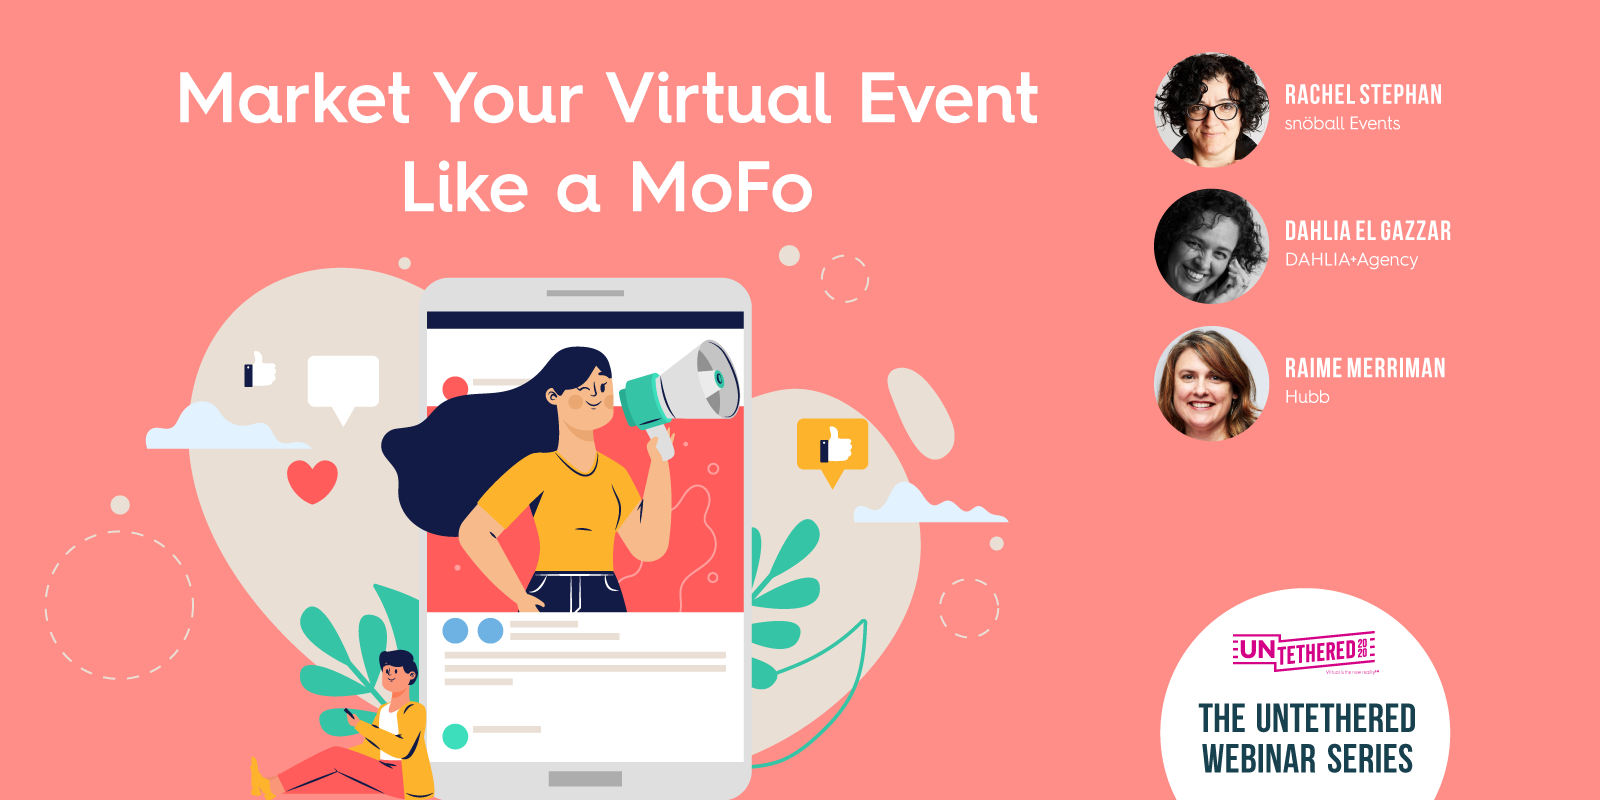 How to Market Your Virtual Event Like a MoFo Webinar